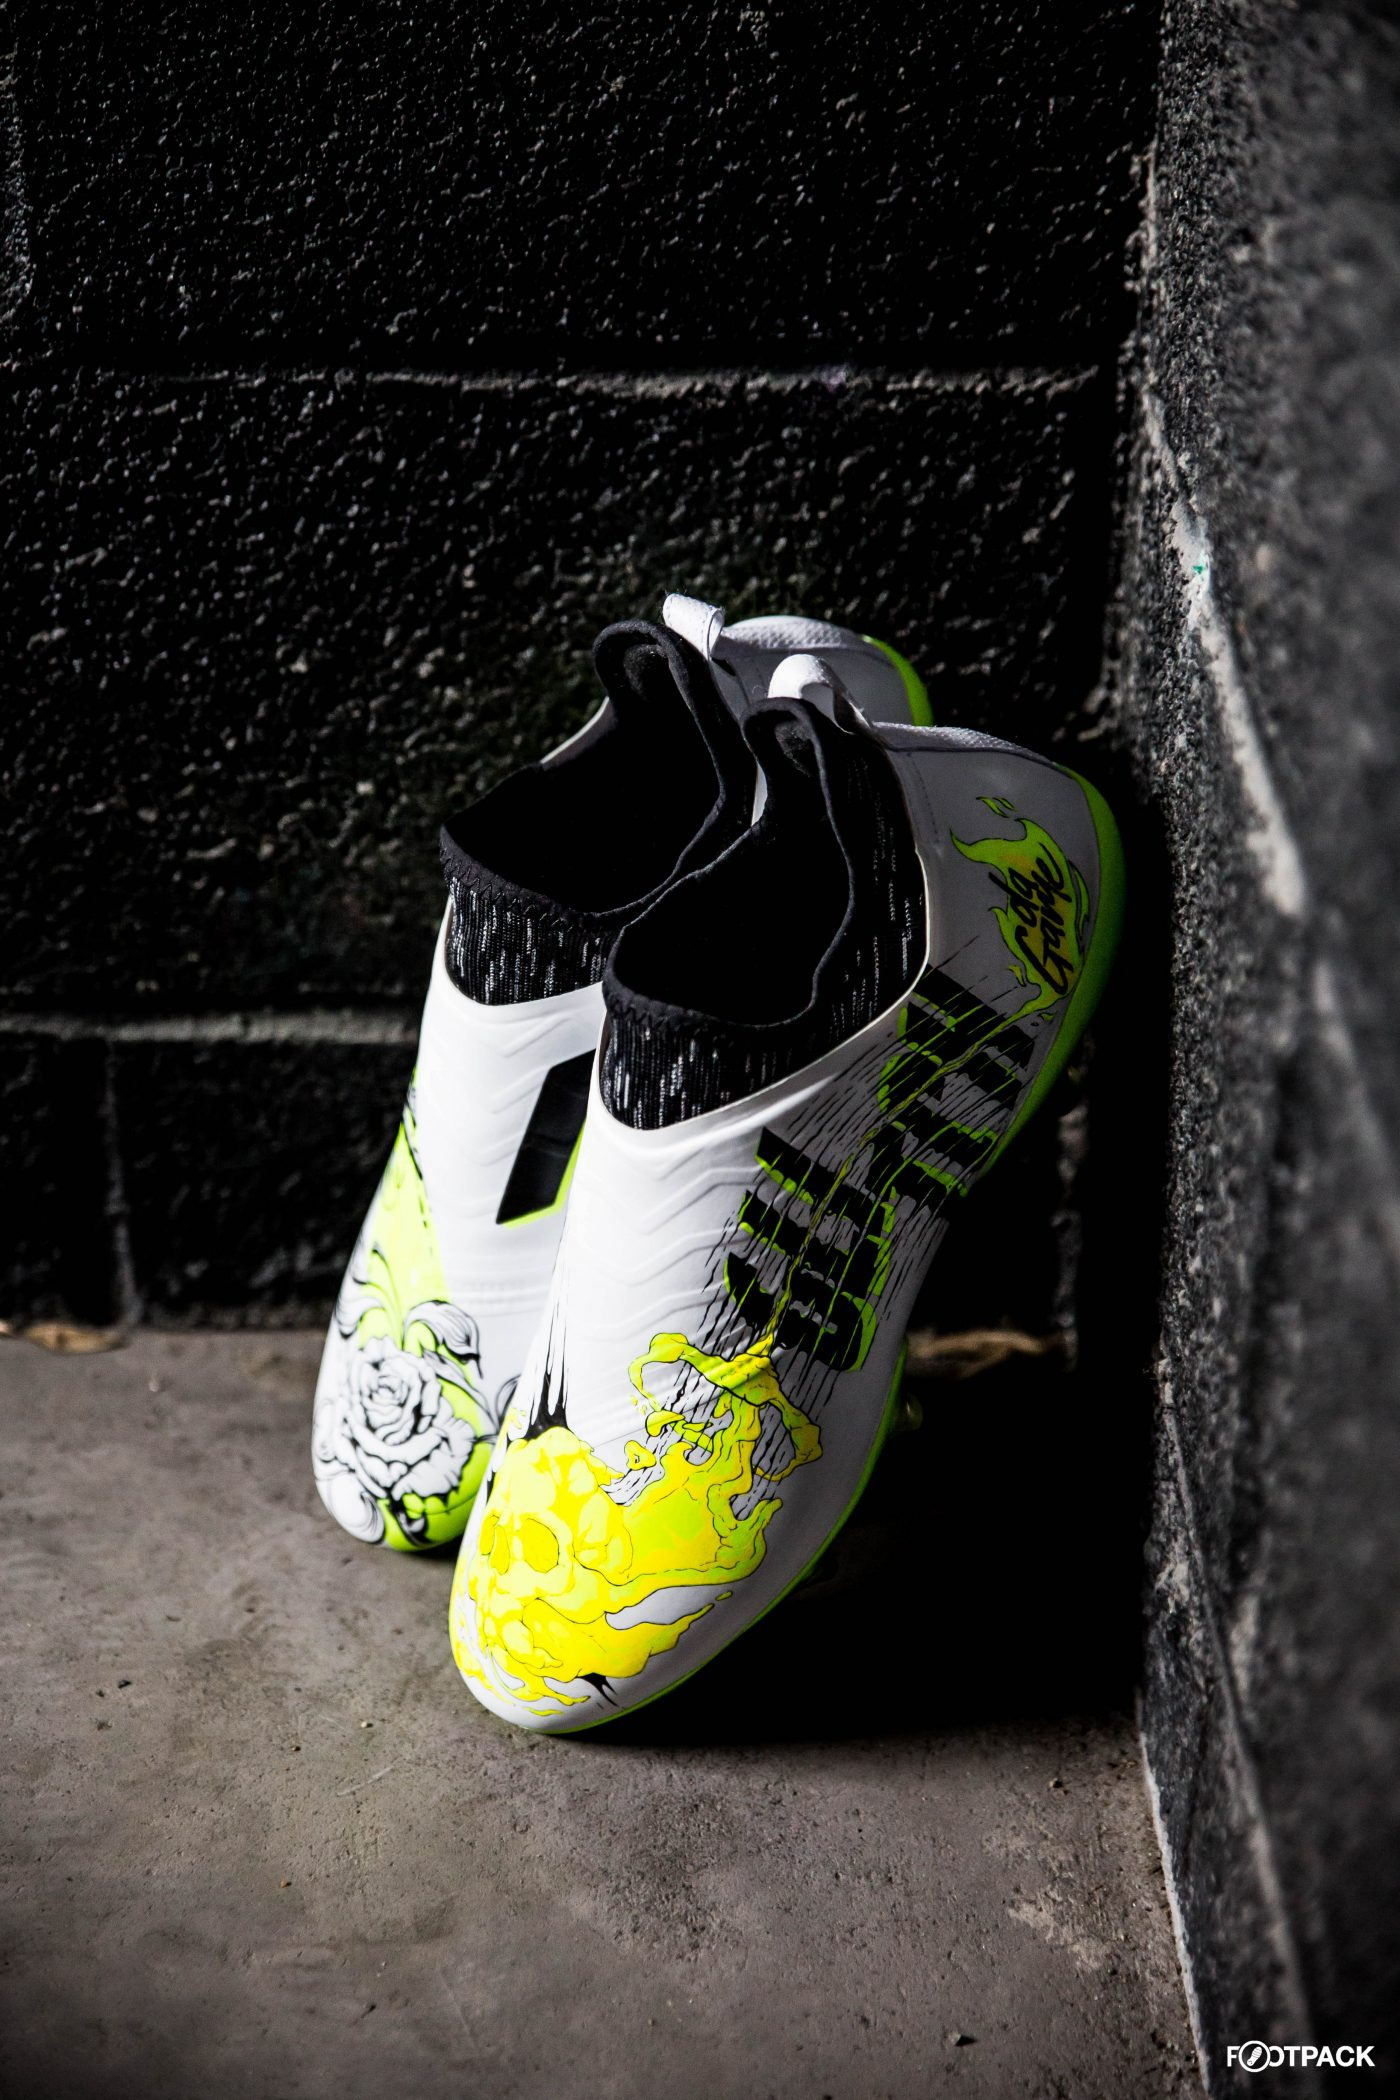 skin-glitch-footpack-adidas-co-creation-10